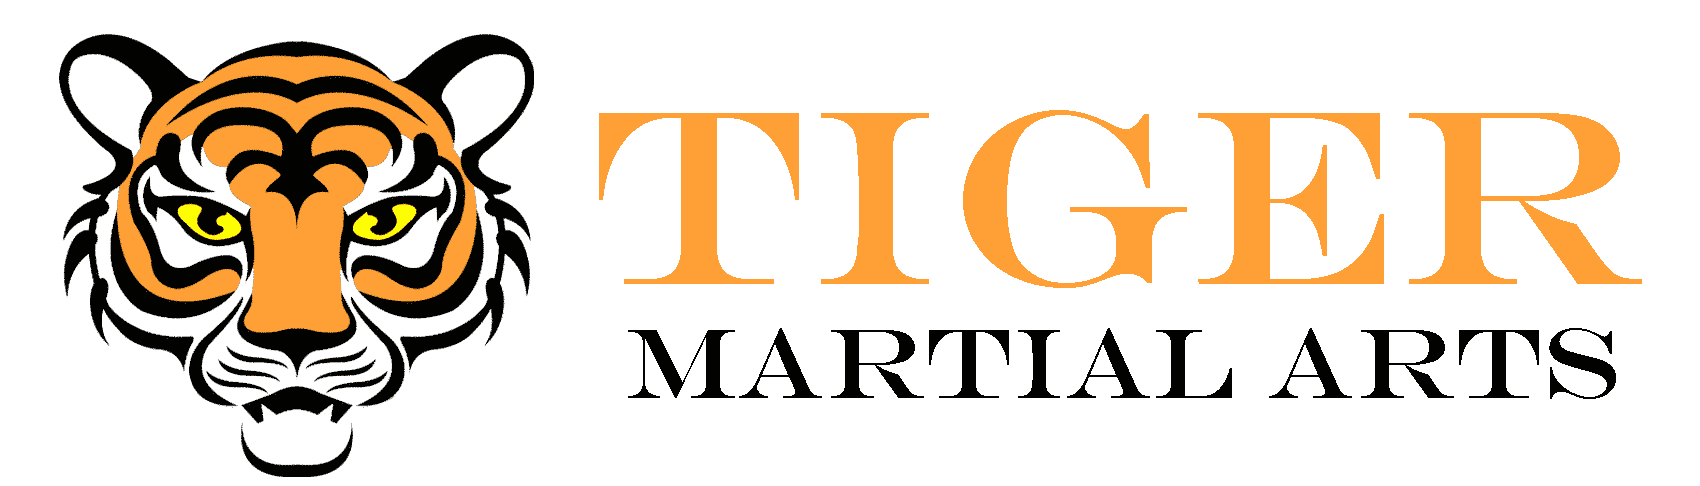 Tiger Martial Arts Main header logo